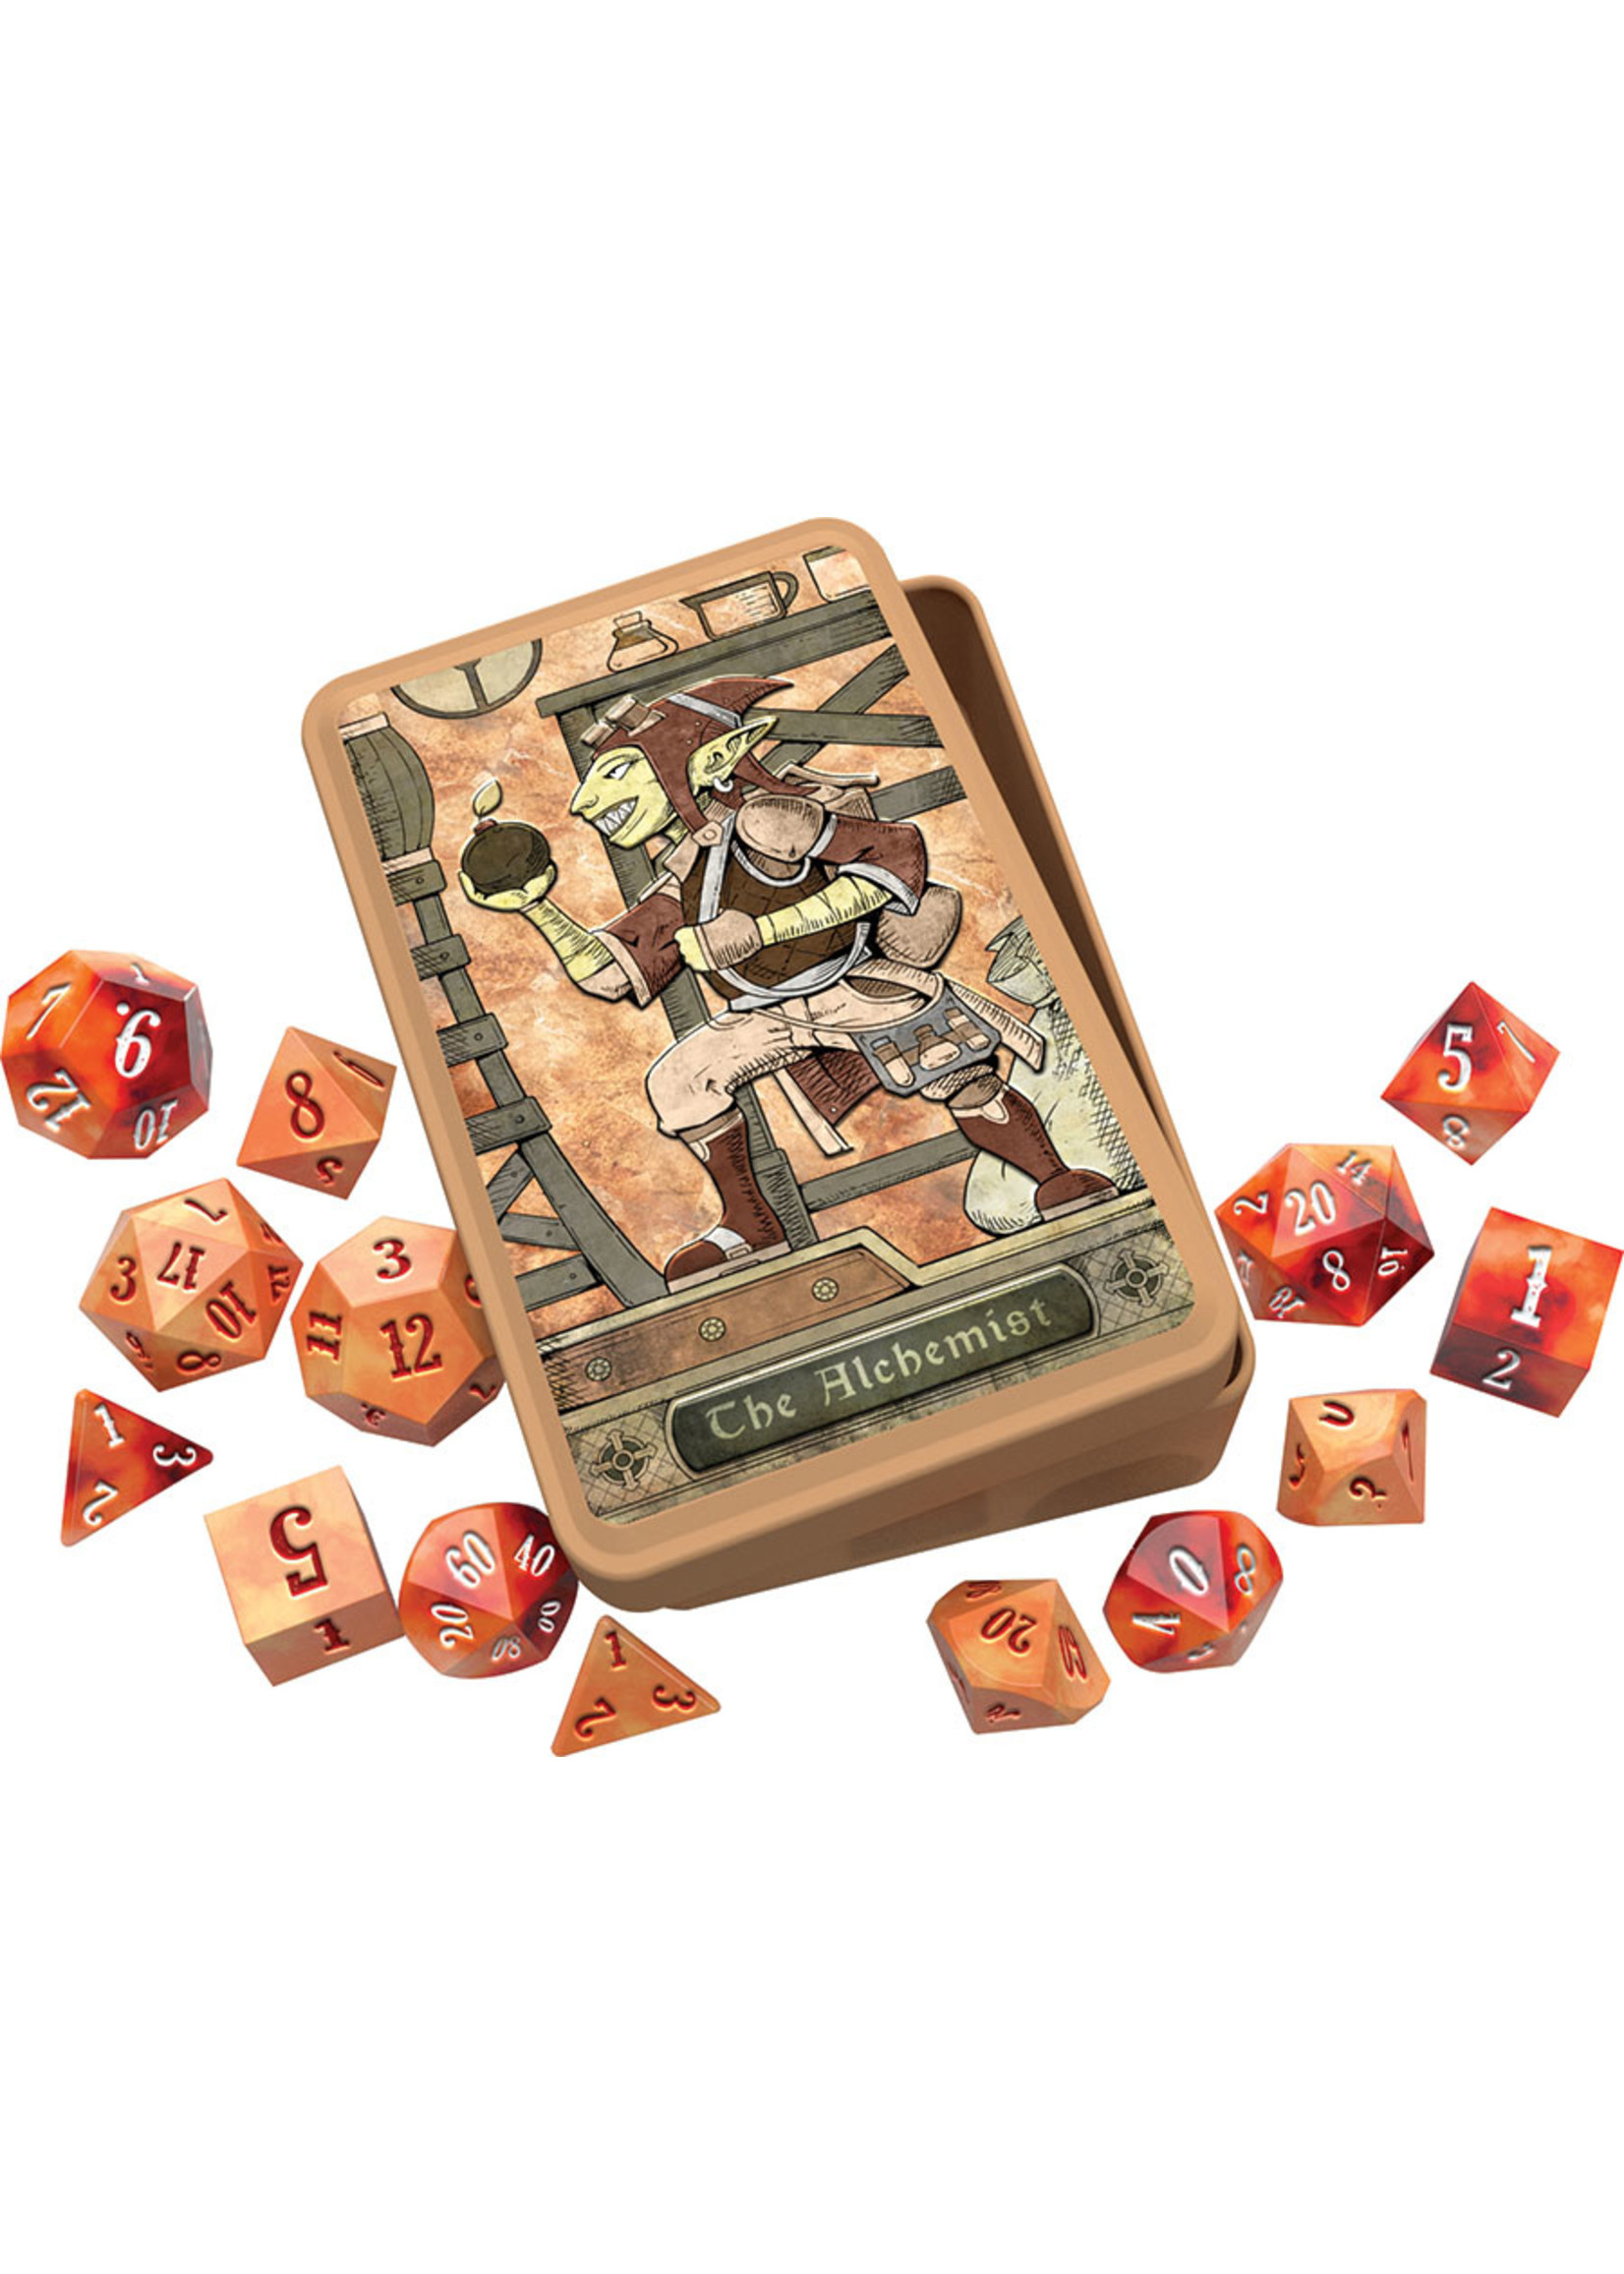 Beadle and Grimm's LLC Class-Specific Dice Set